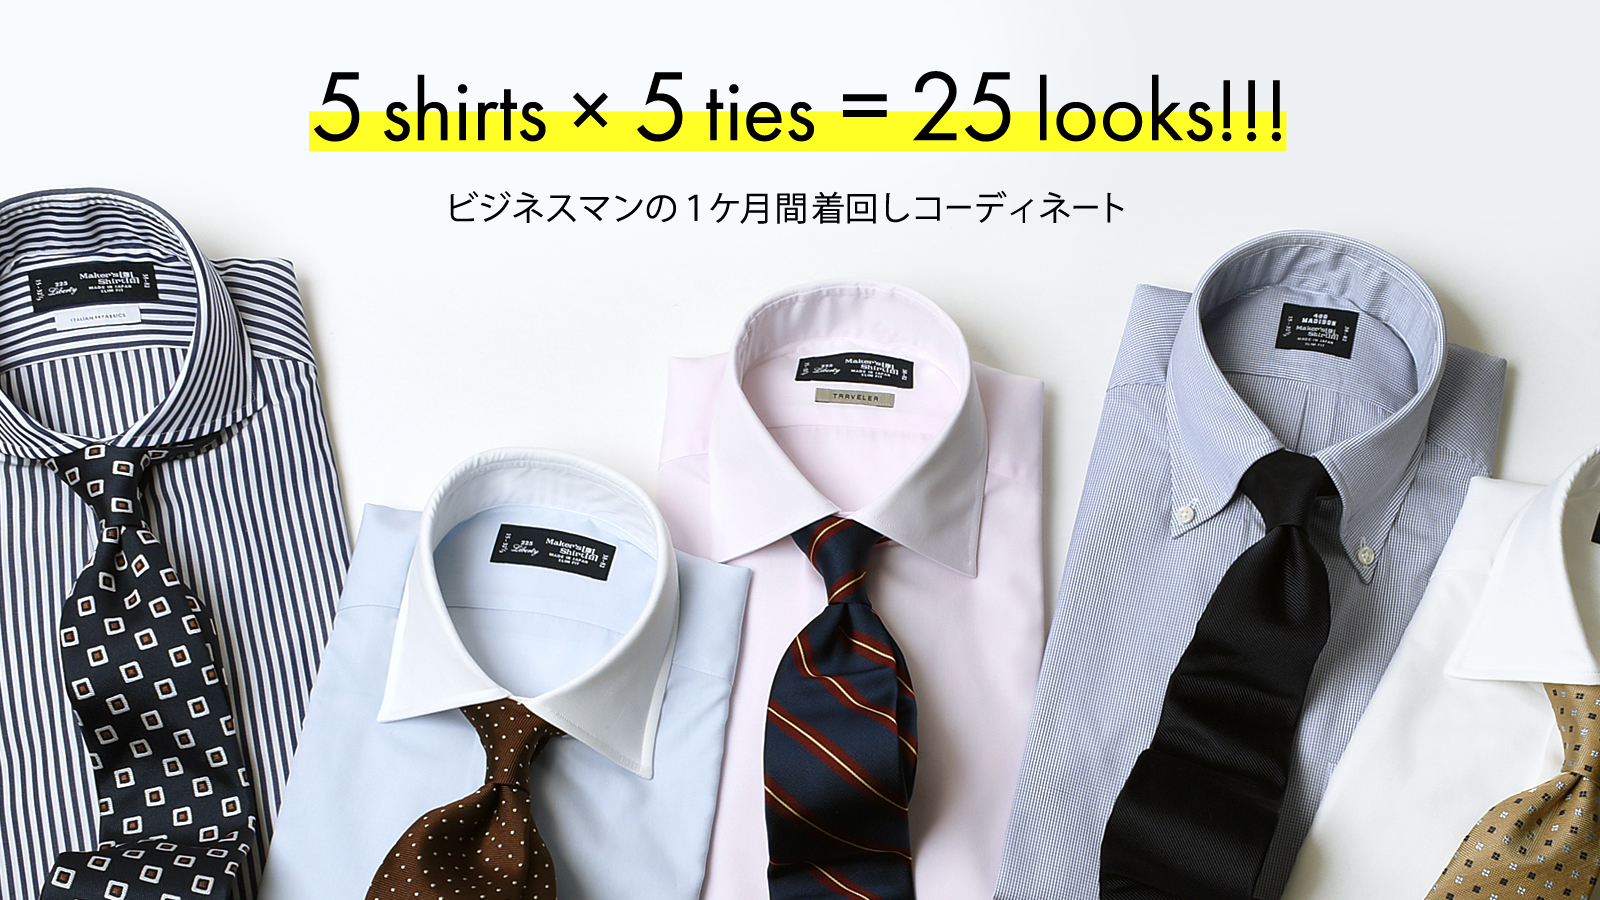 Many variation of Kamakura Shirts